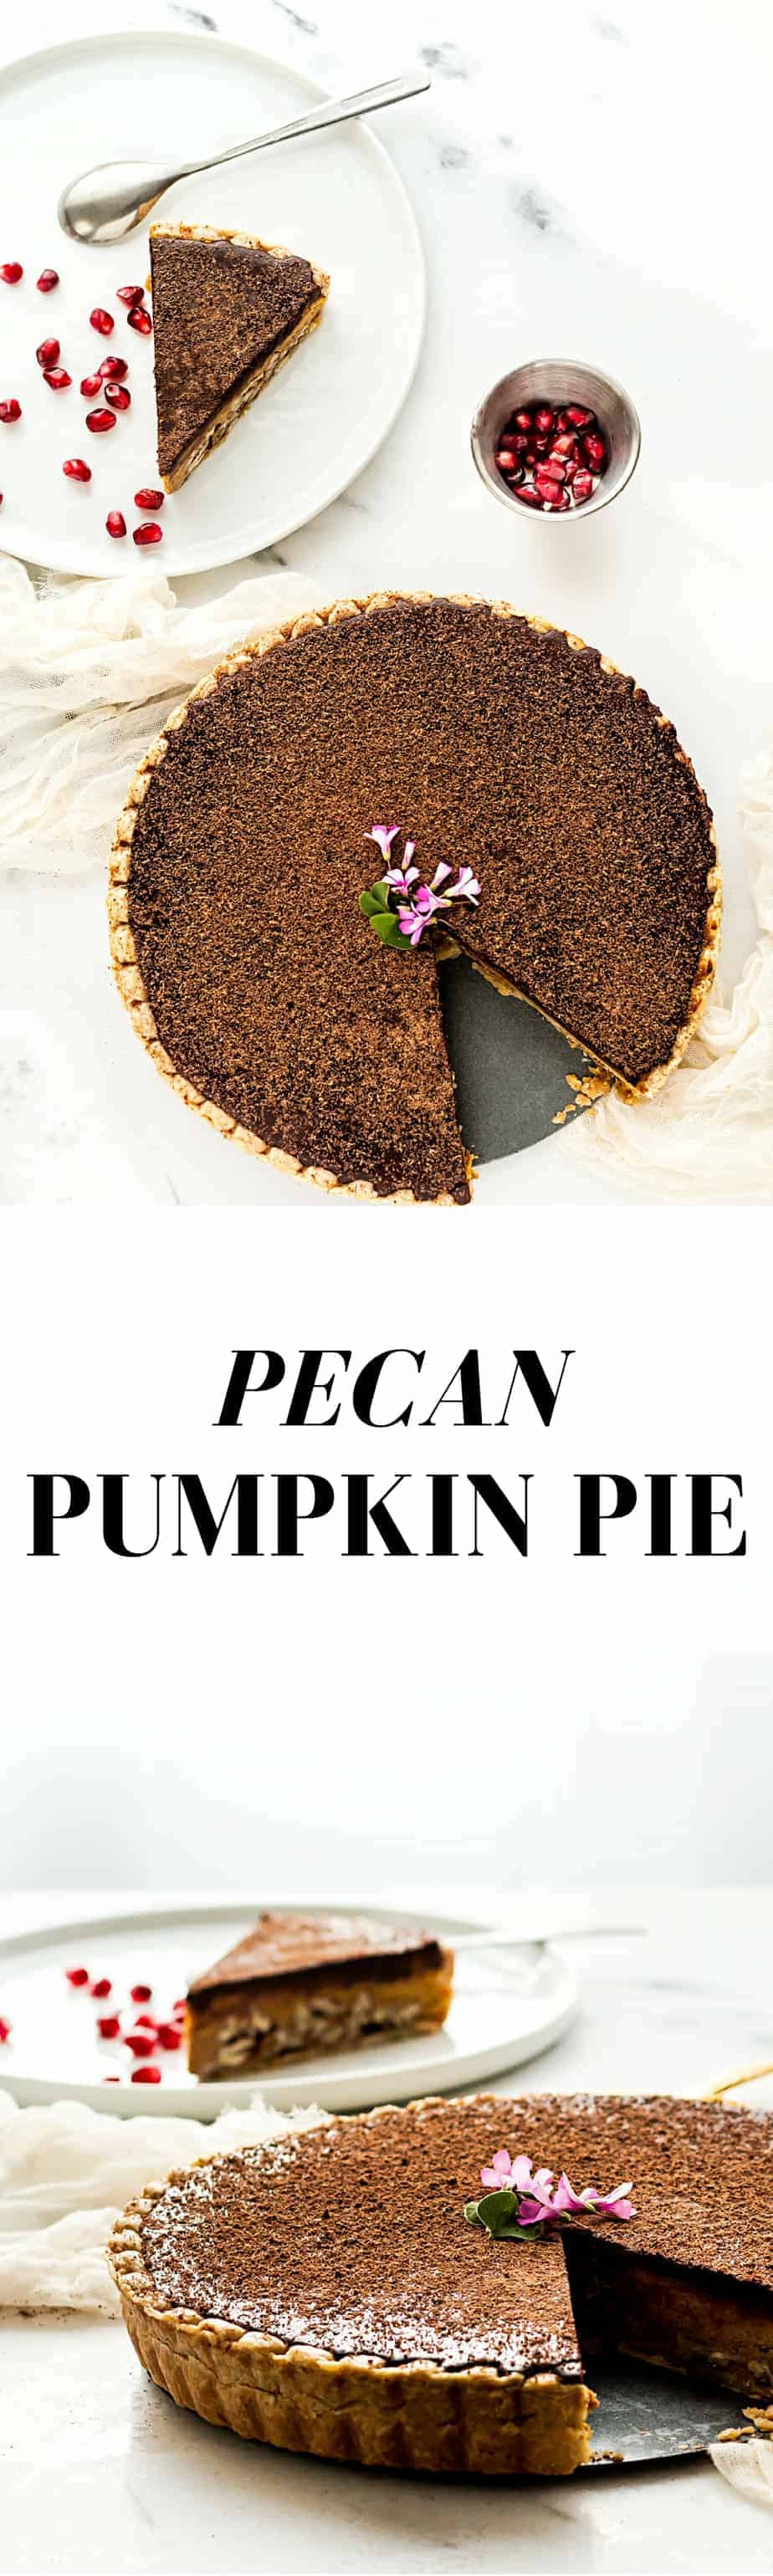 pumpkin pie recipe with pecan and a chocolate topping